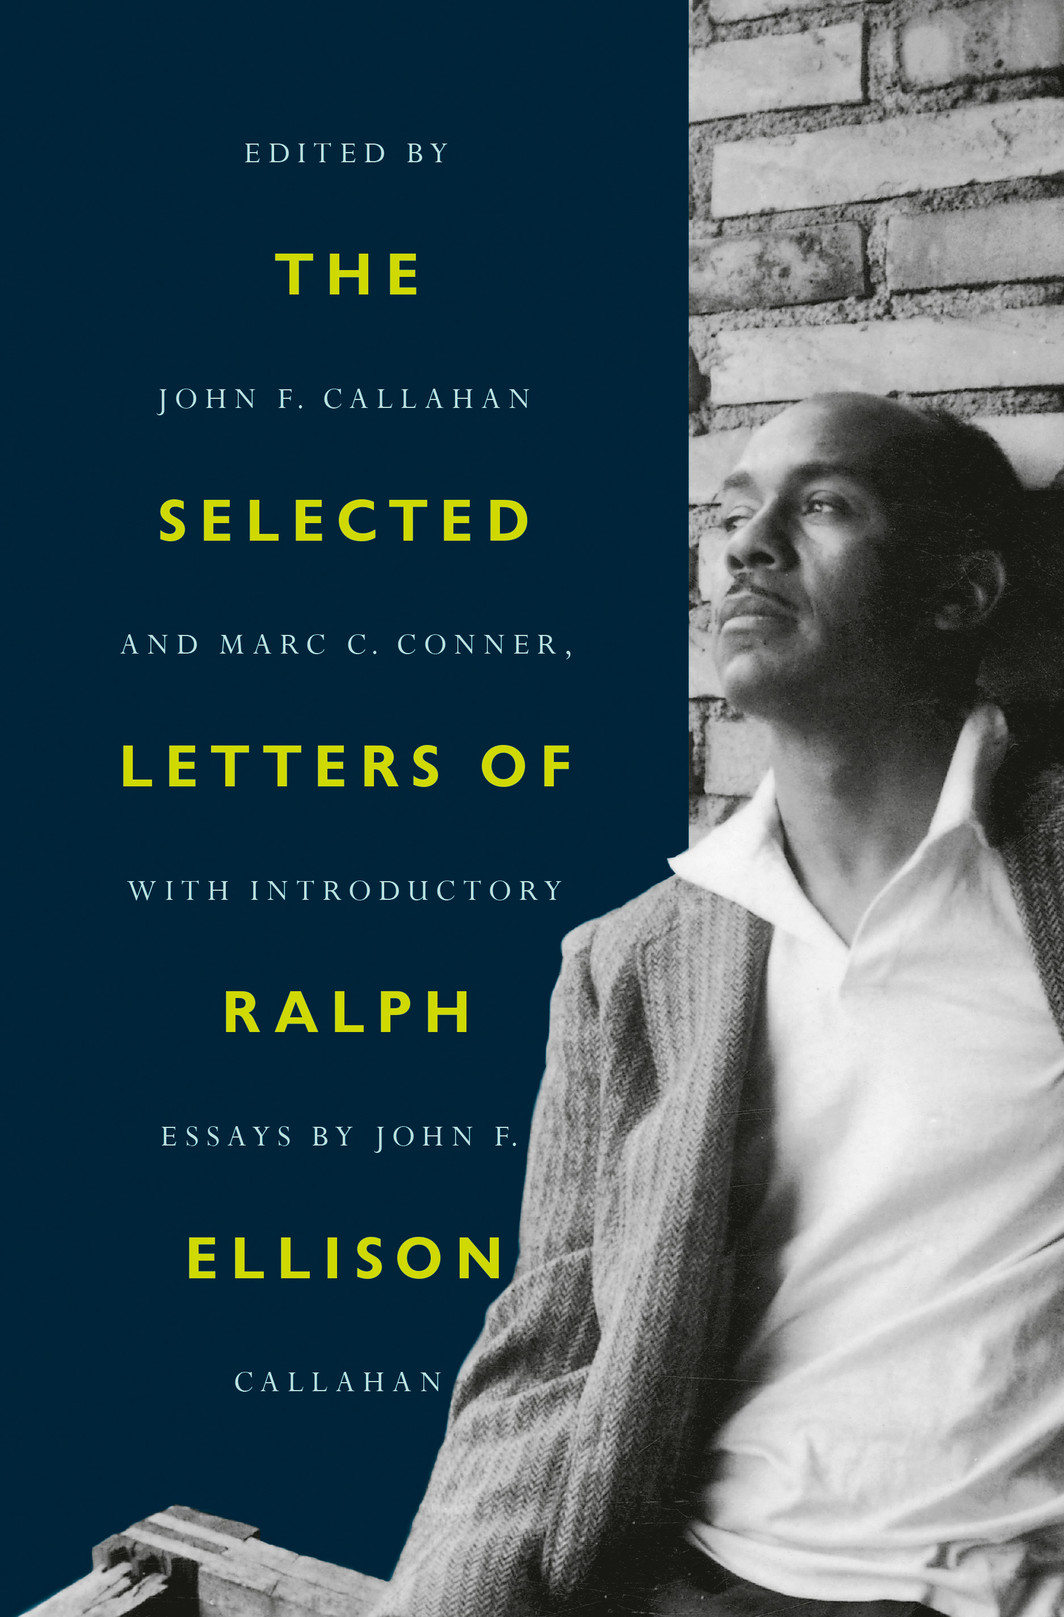 The cover of The Selected Letters of Ralph Ellison